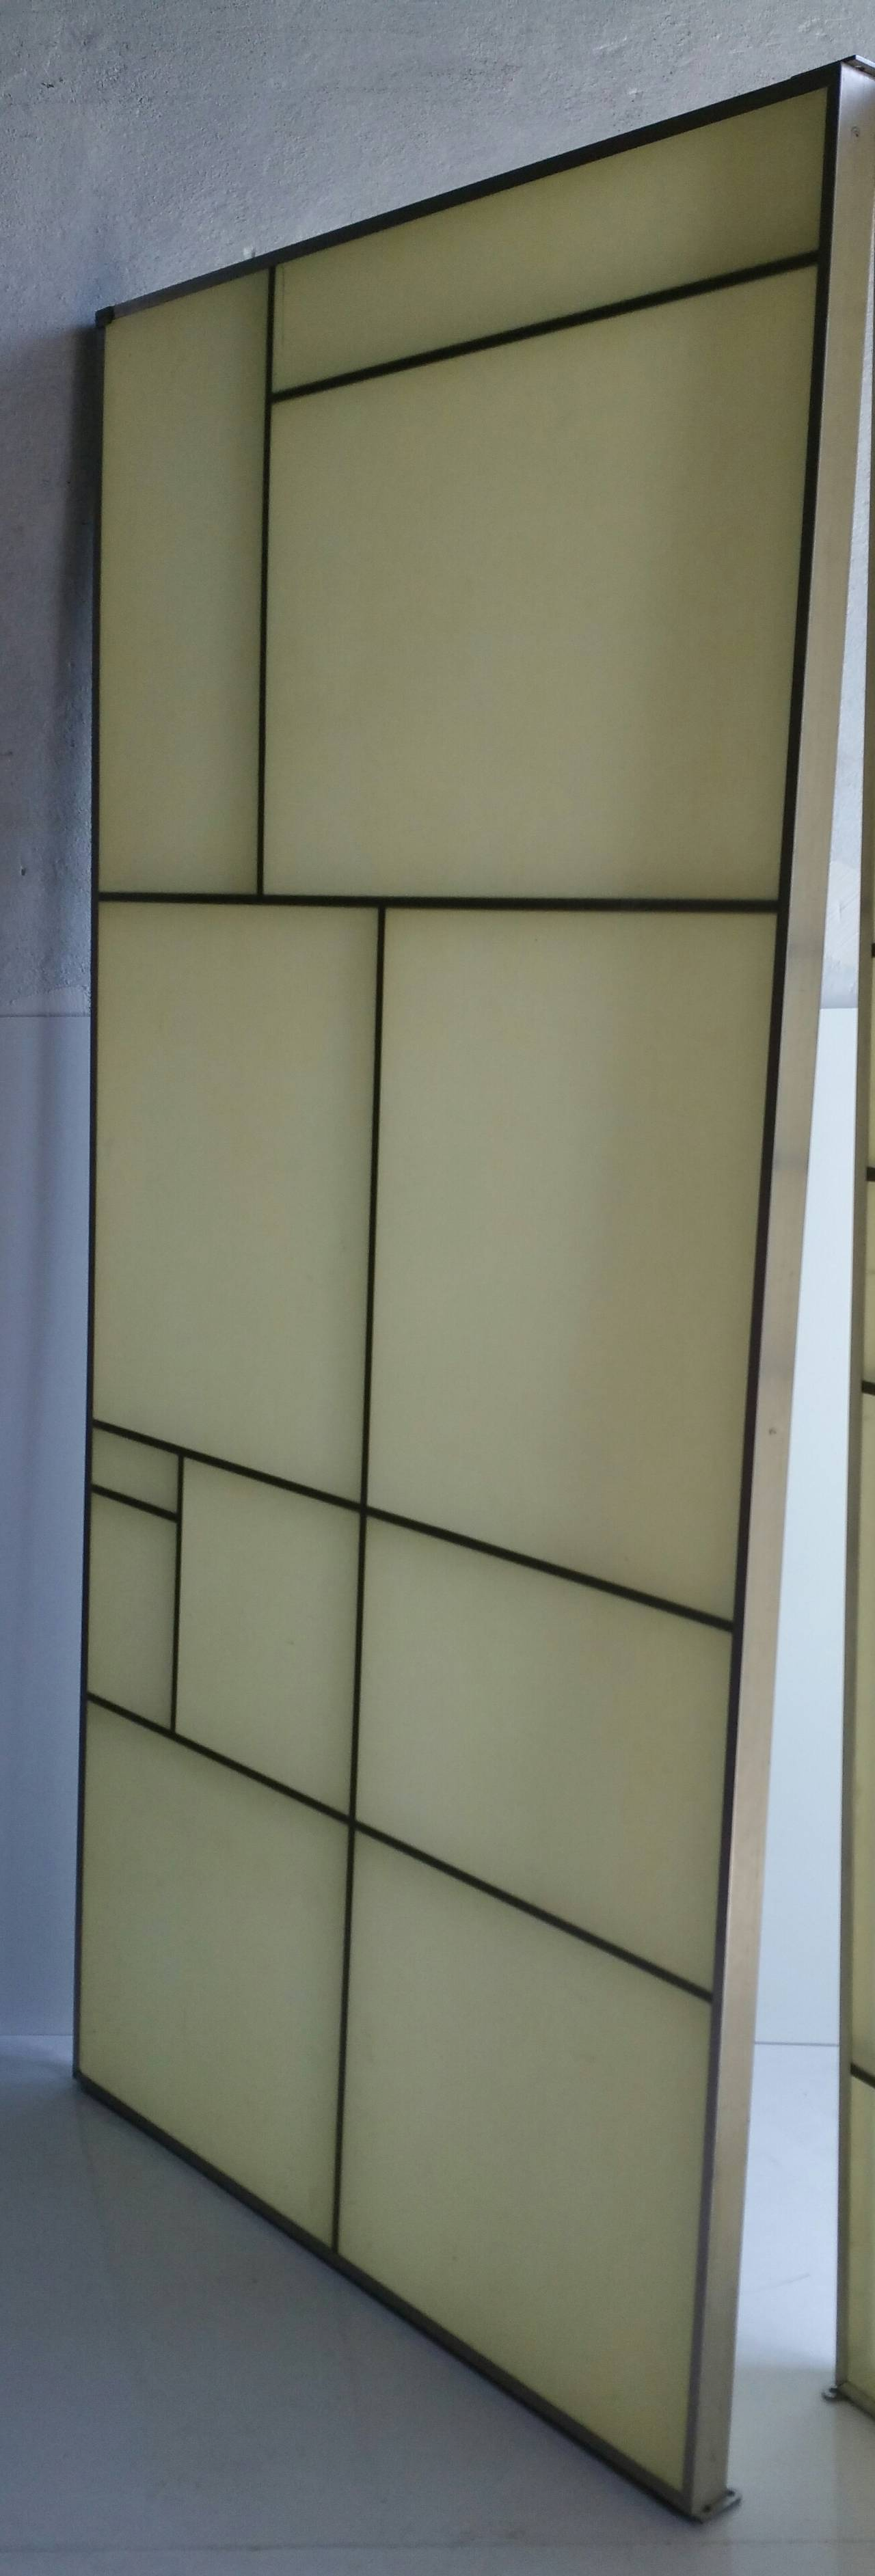 Architectural Aluminum And Fiberglass Panels Or Screen